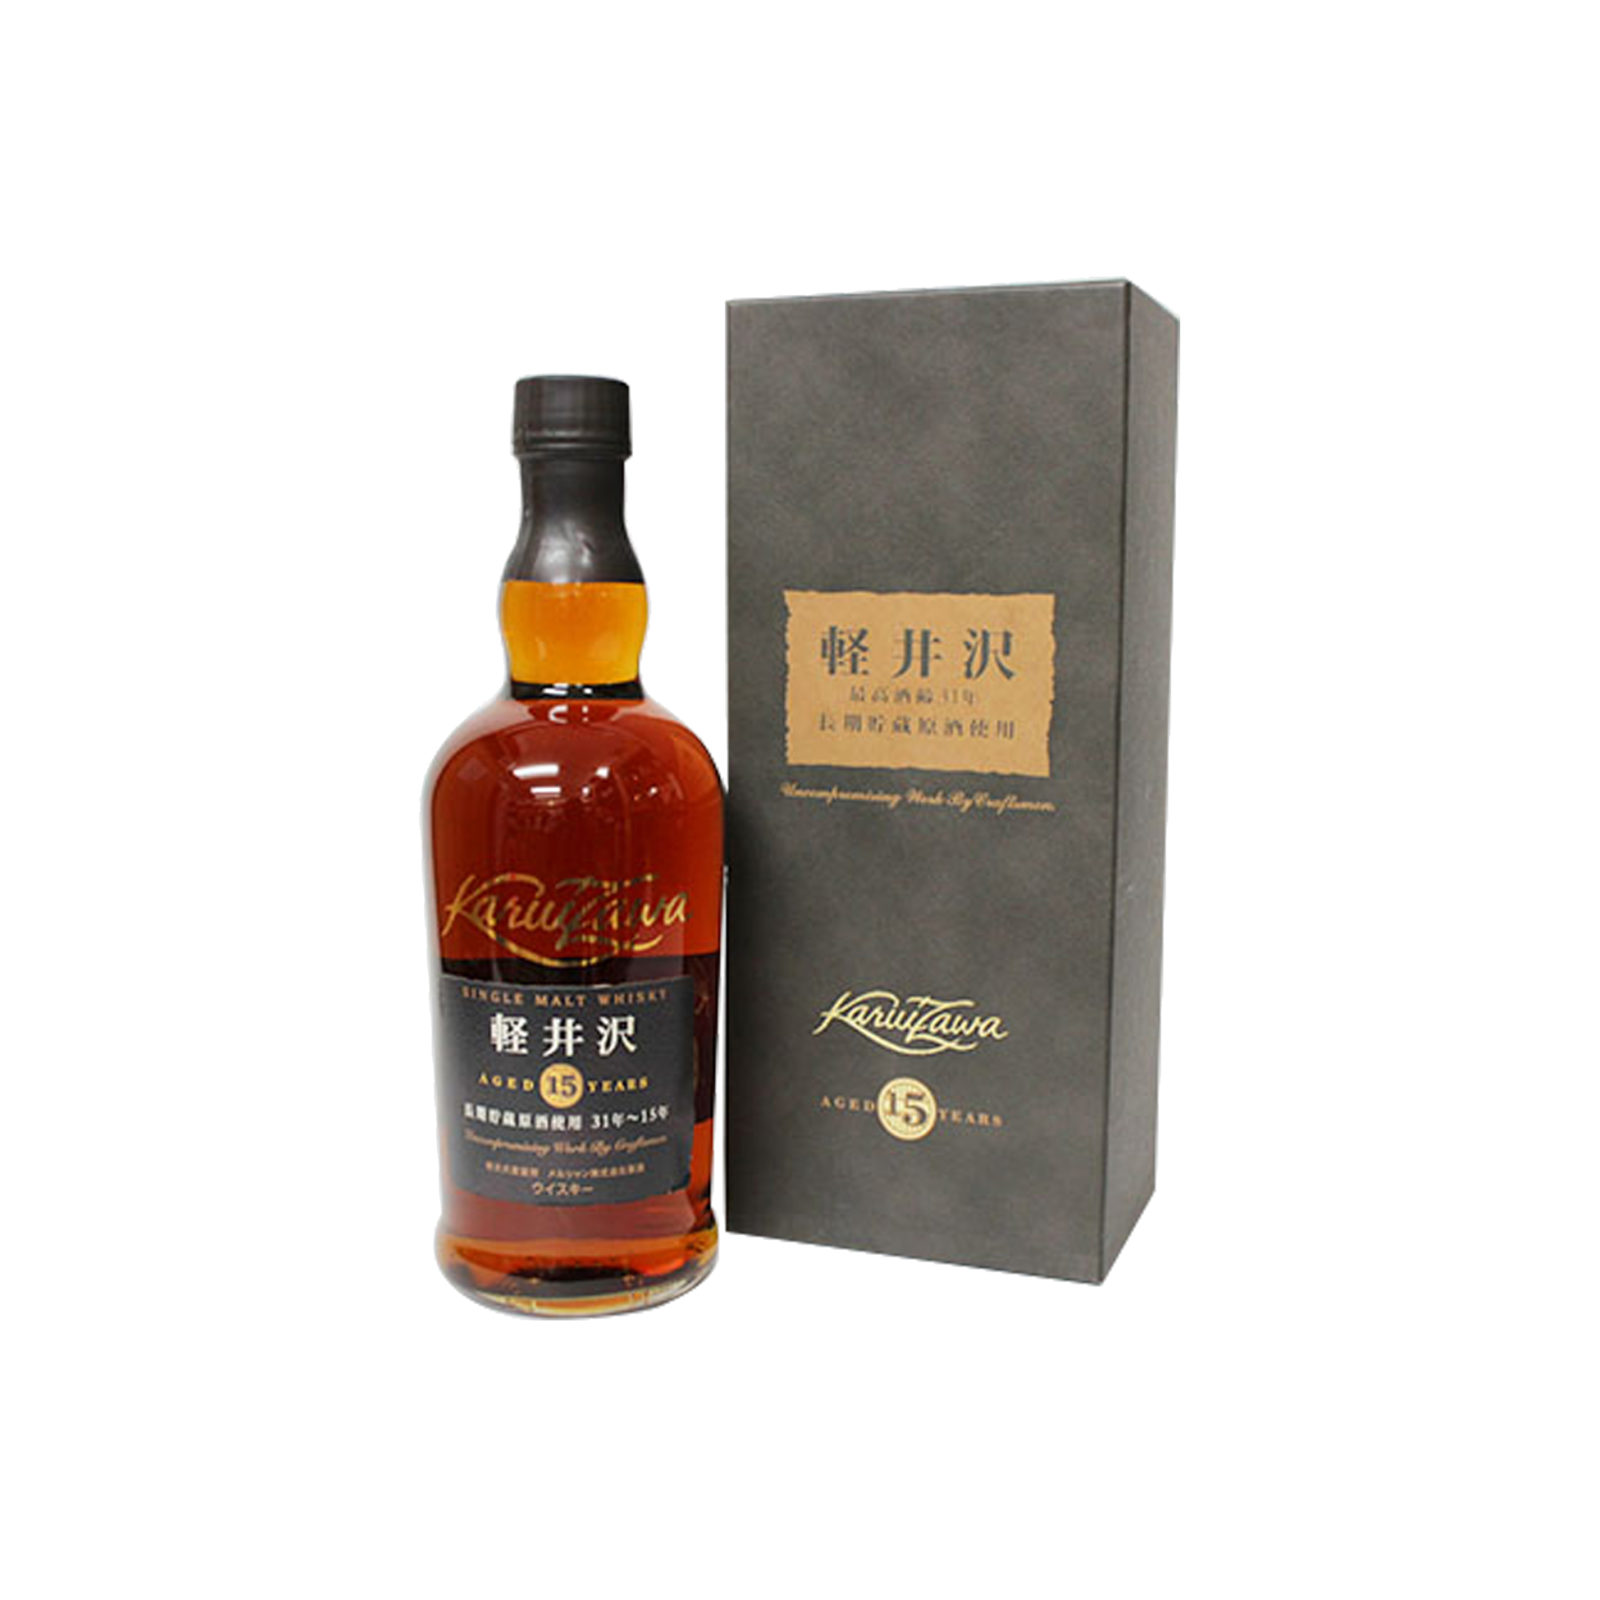 Karuizawa 15 Years Old Rare Single Malt Japanese Whisky